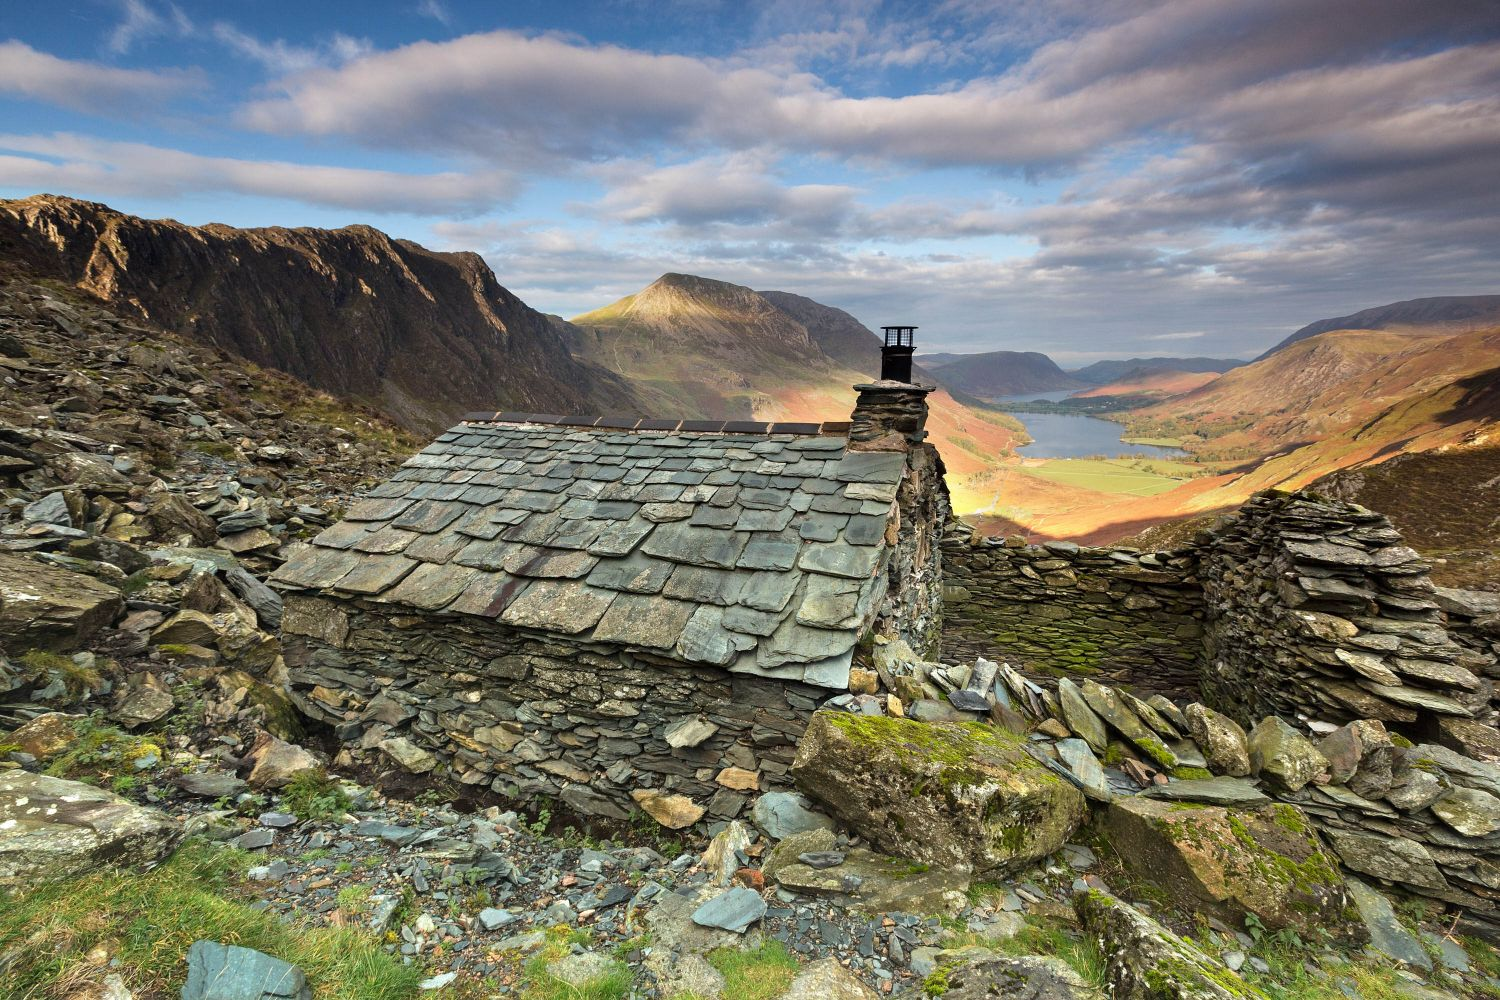 I'm moving in tomorrow to Warnscale Bothy